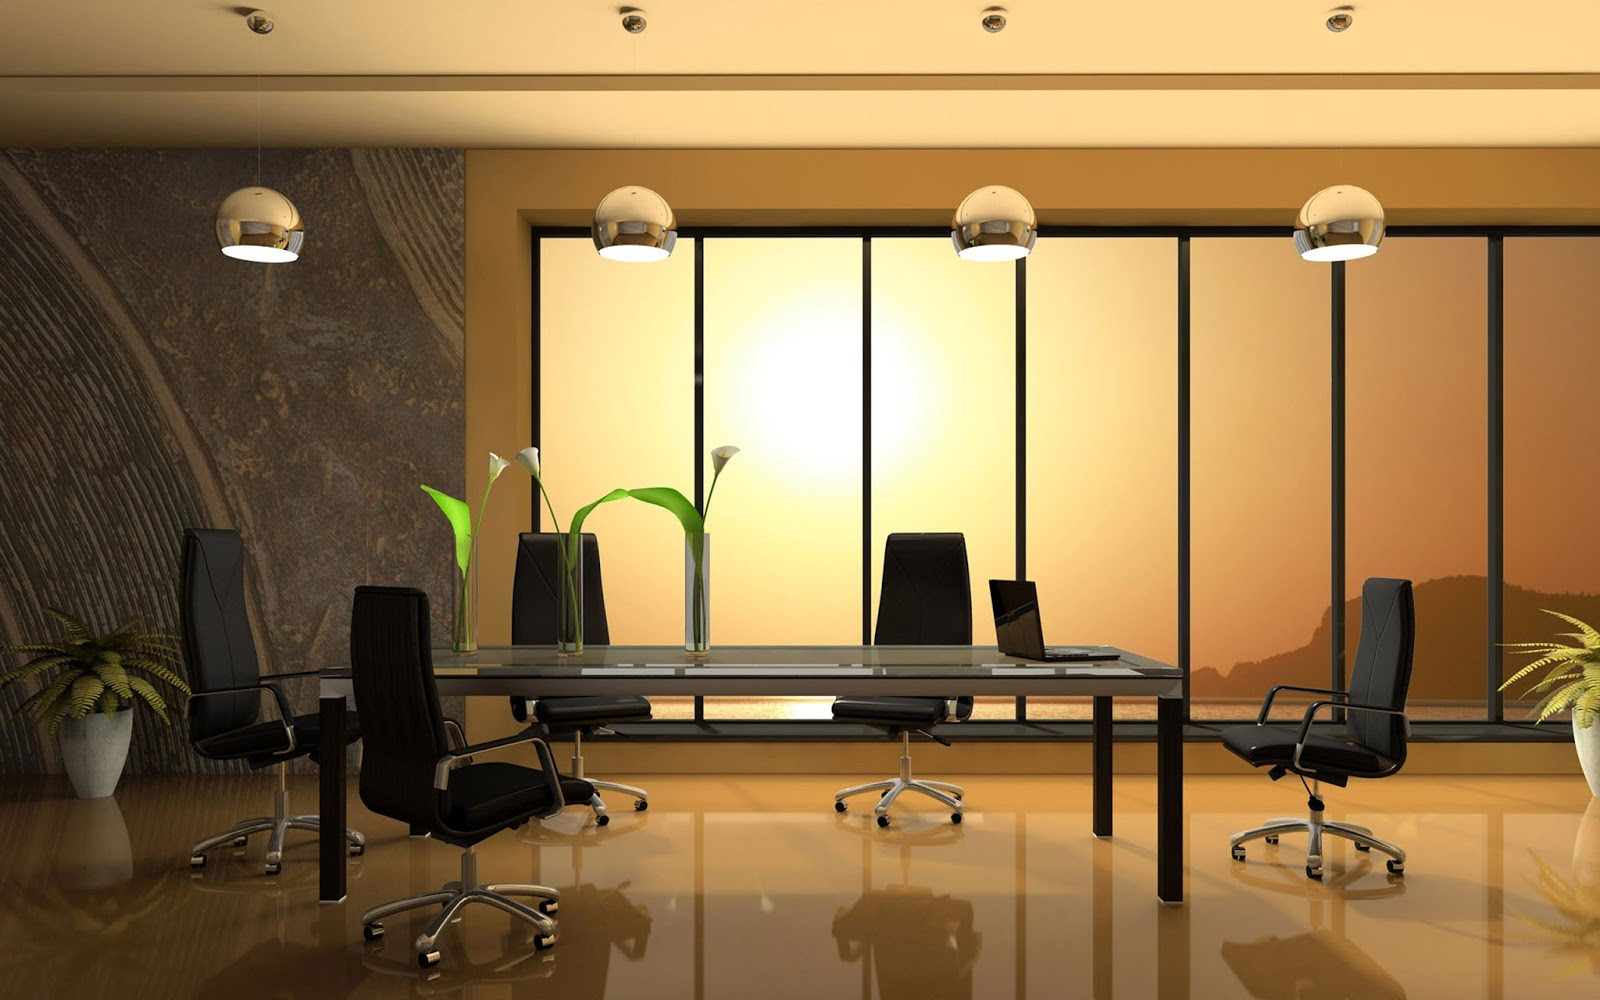 office wall papers. beautiful papers office wall papers photos free wallpaper download papers on office wall papers